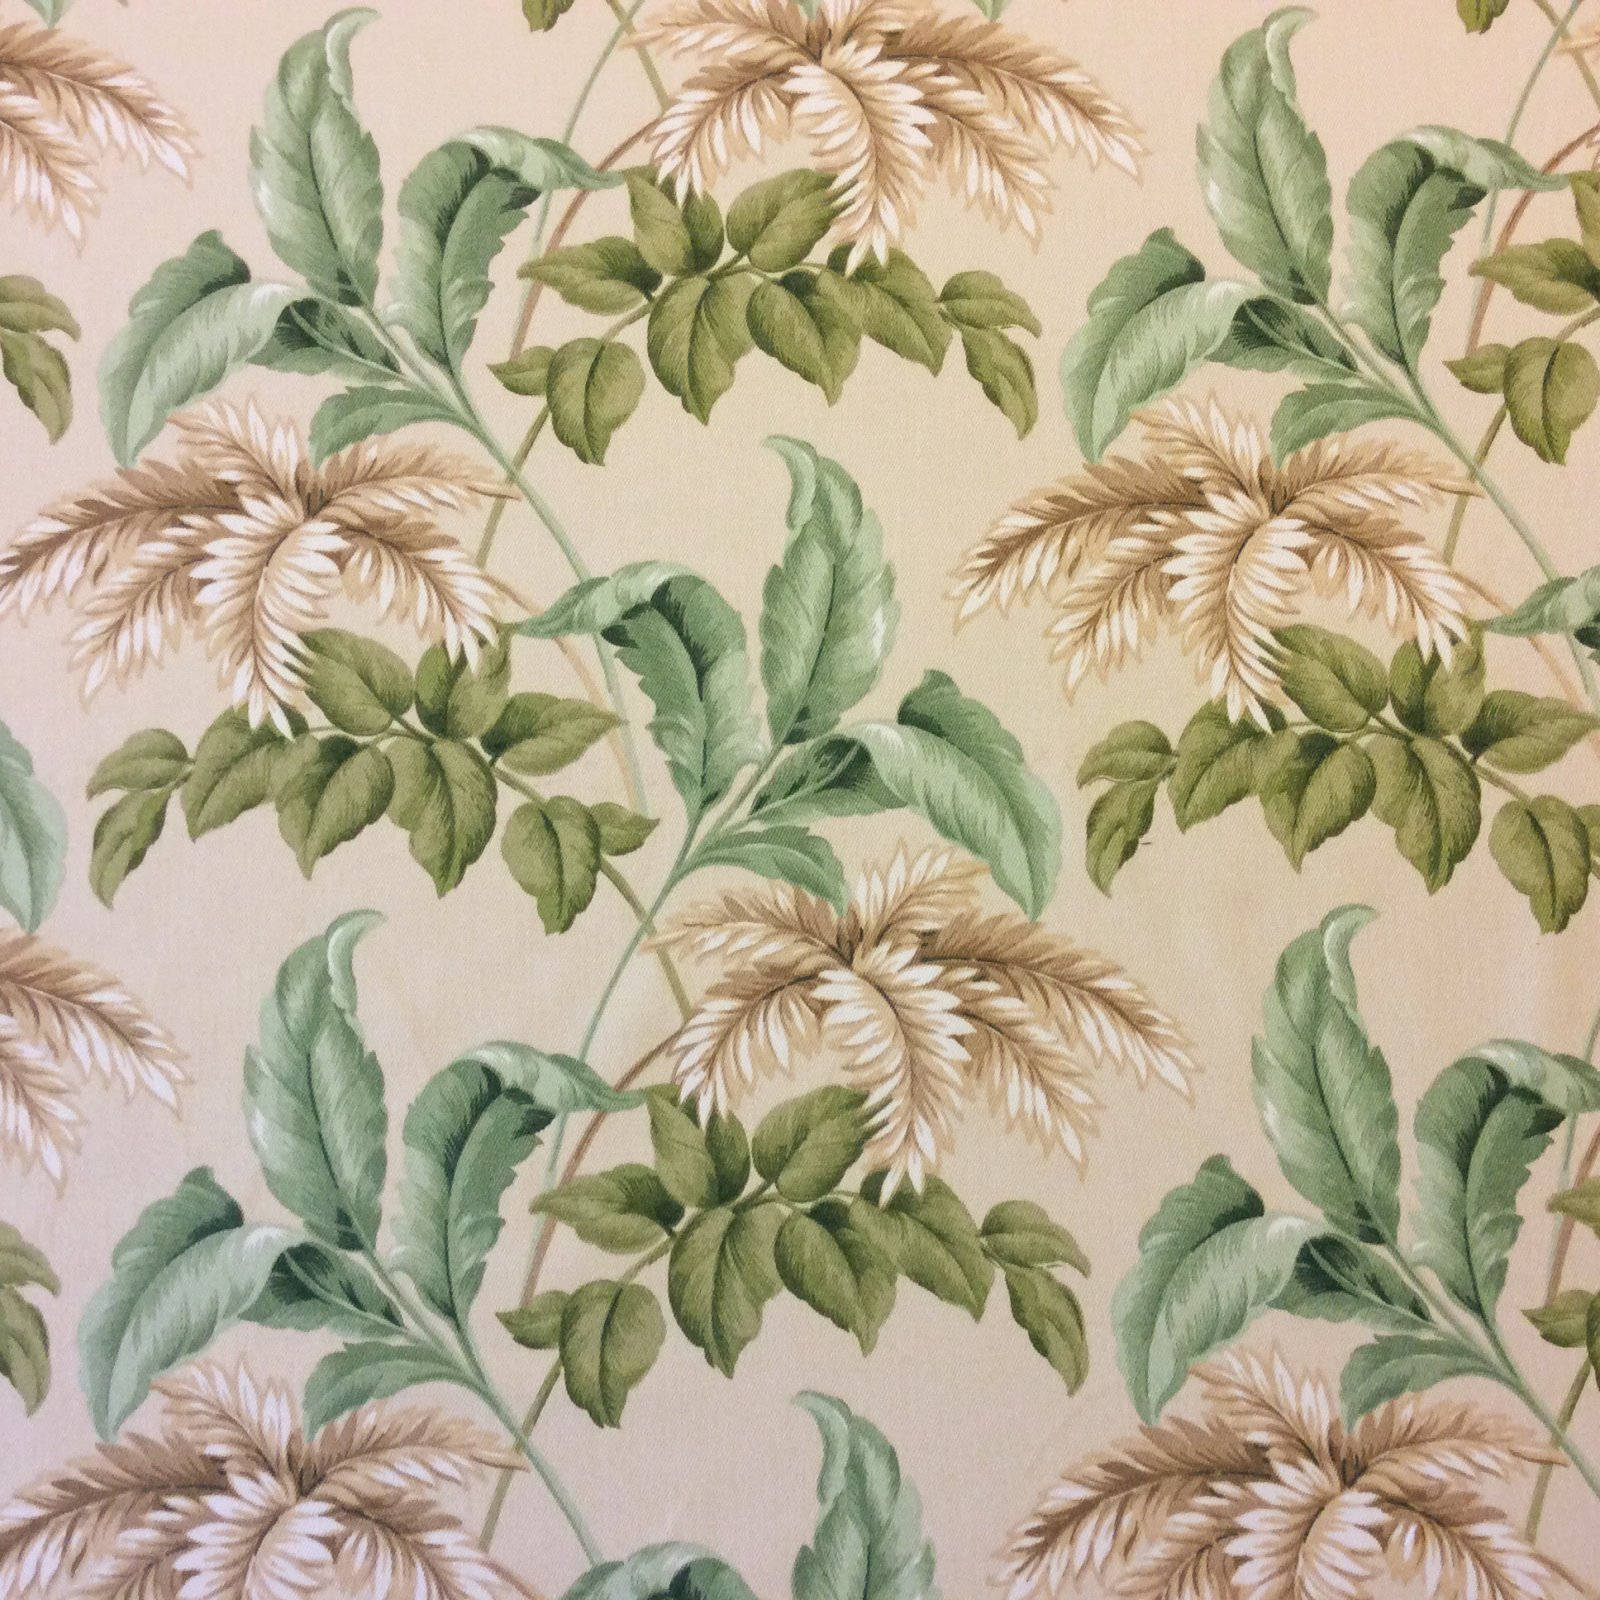 Palm Leaves Classic Tropical Leaf Soft Indoor Outdoor fabric Famous Maker Neutral Tones Green Tan leaves 738 CLOSEOUT